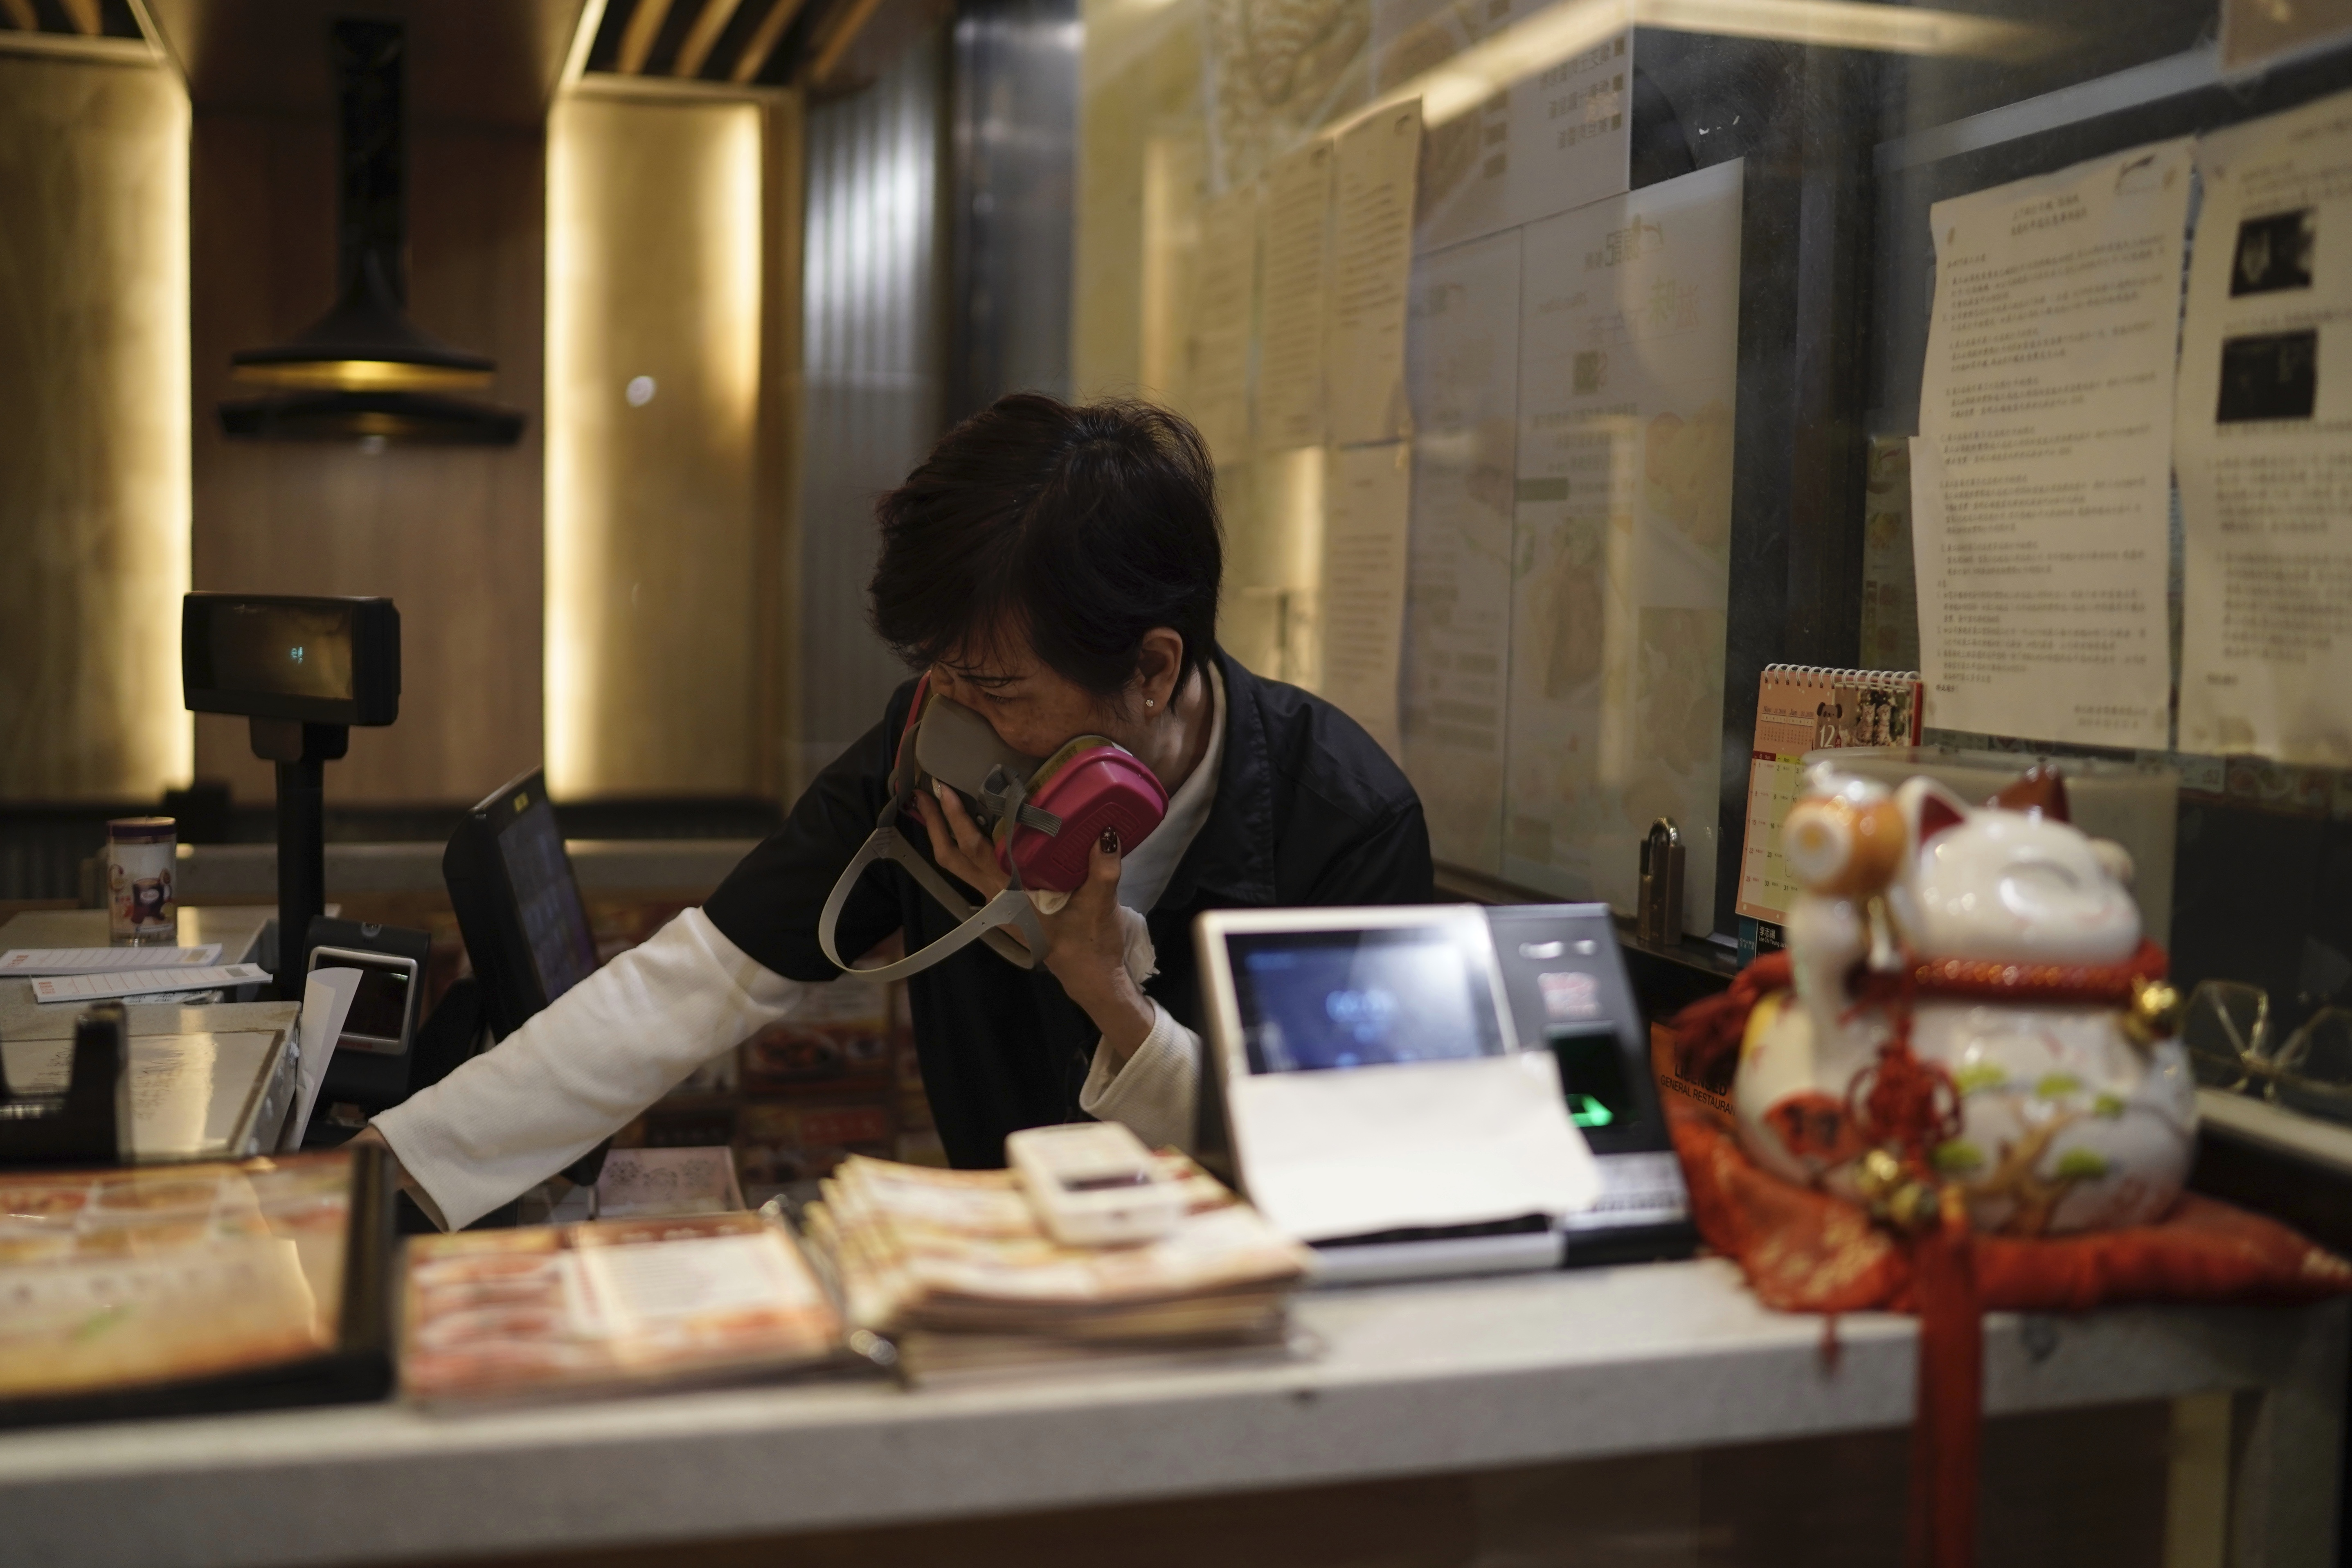 A cashier in a restaurant reacts to tear gas as police confront protesters on Christmas Eve in Hong Kong on December 24, 2019.